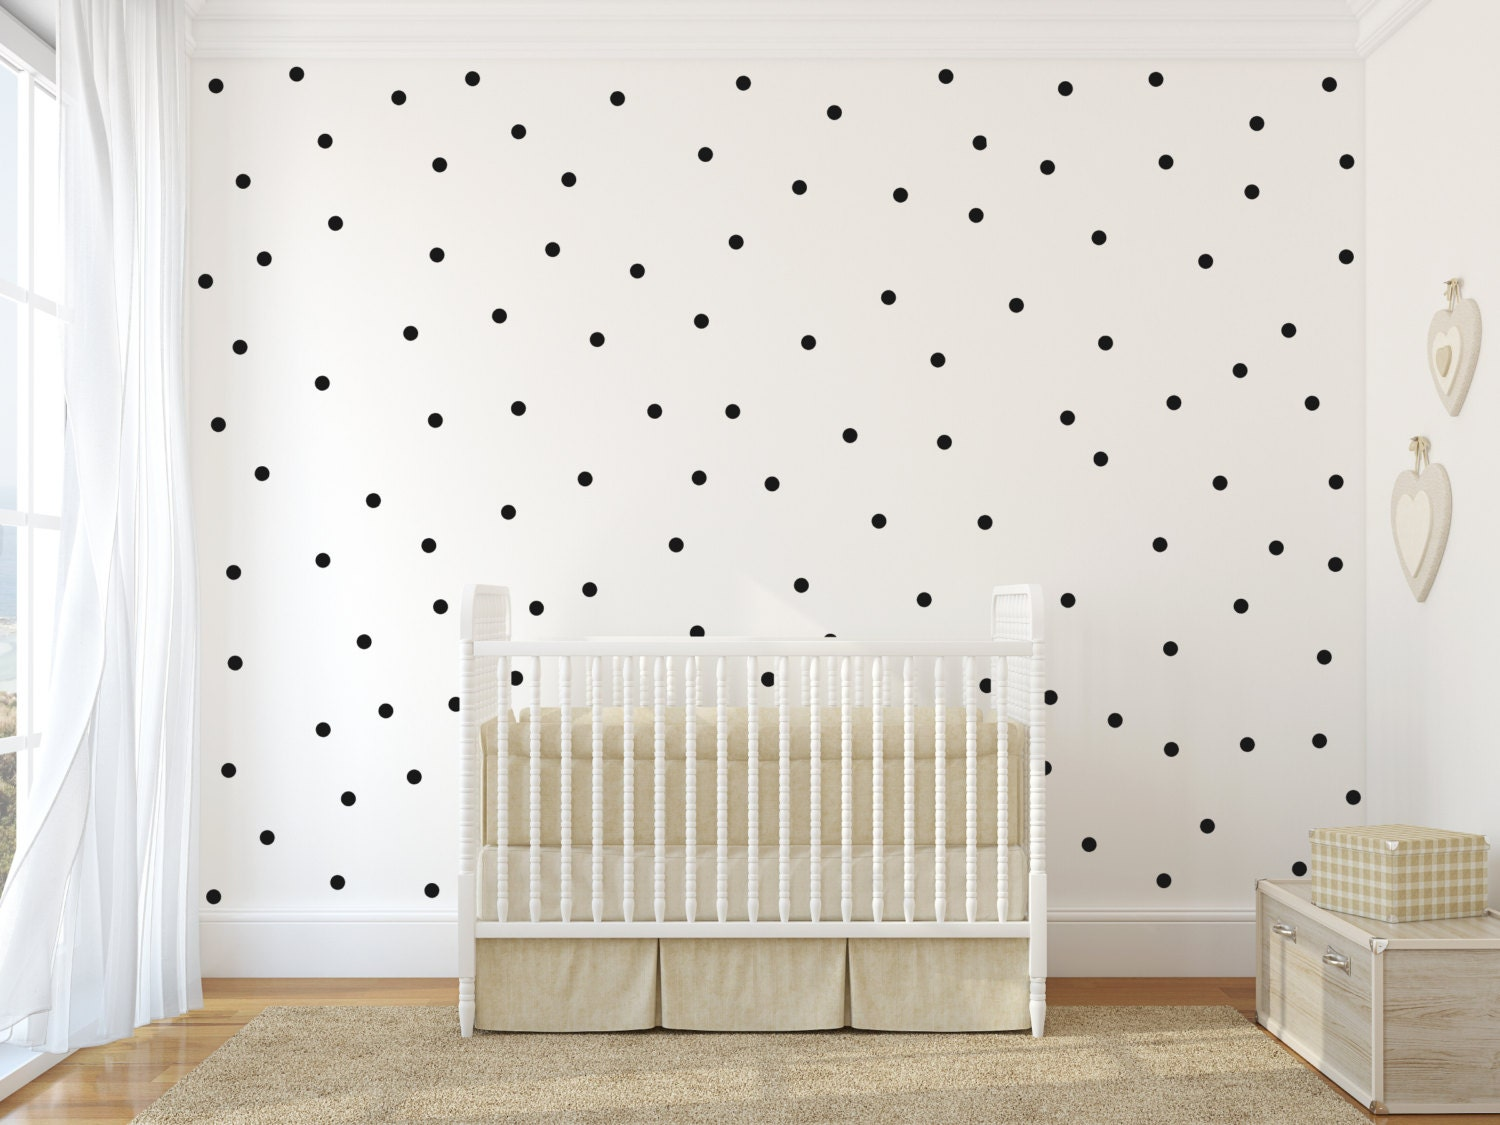 small polka dot vinyl wall sticker decal art decor nursery. Black Bedroom Furniture Sets. Home Design Ideas